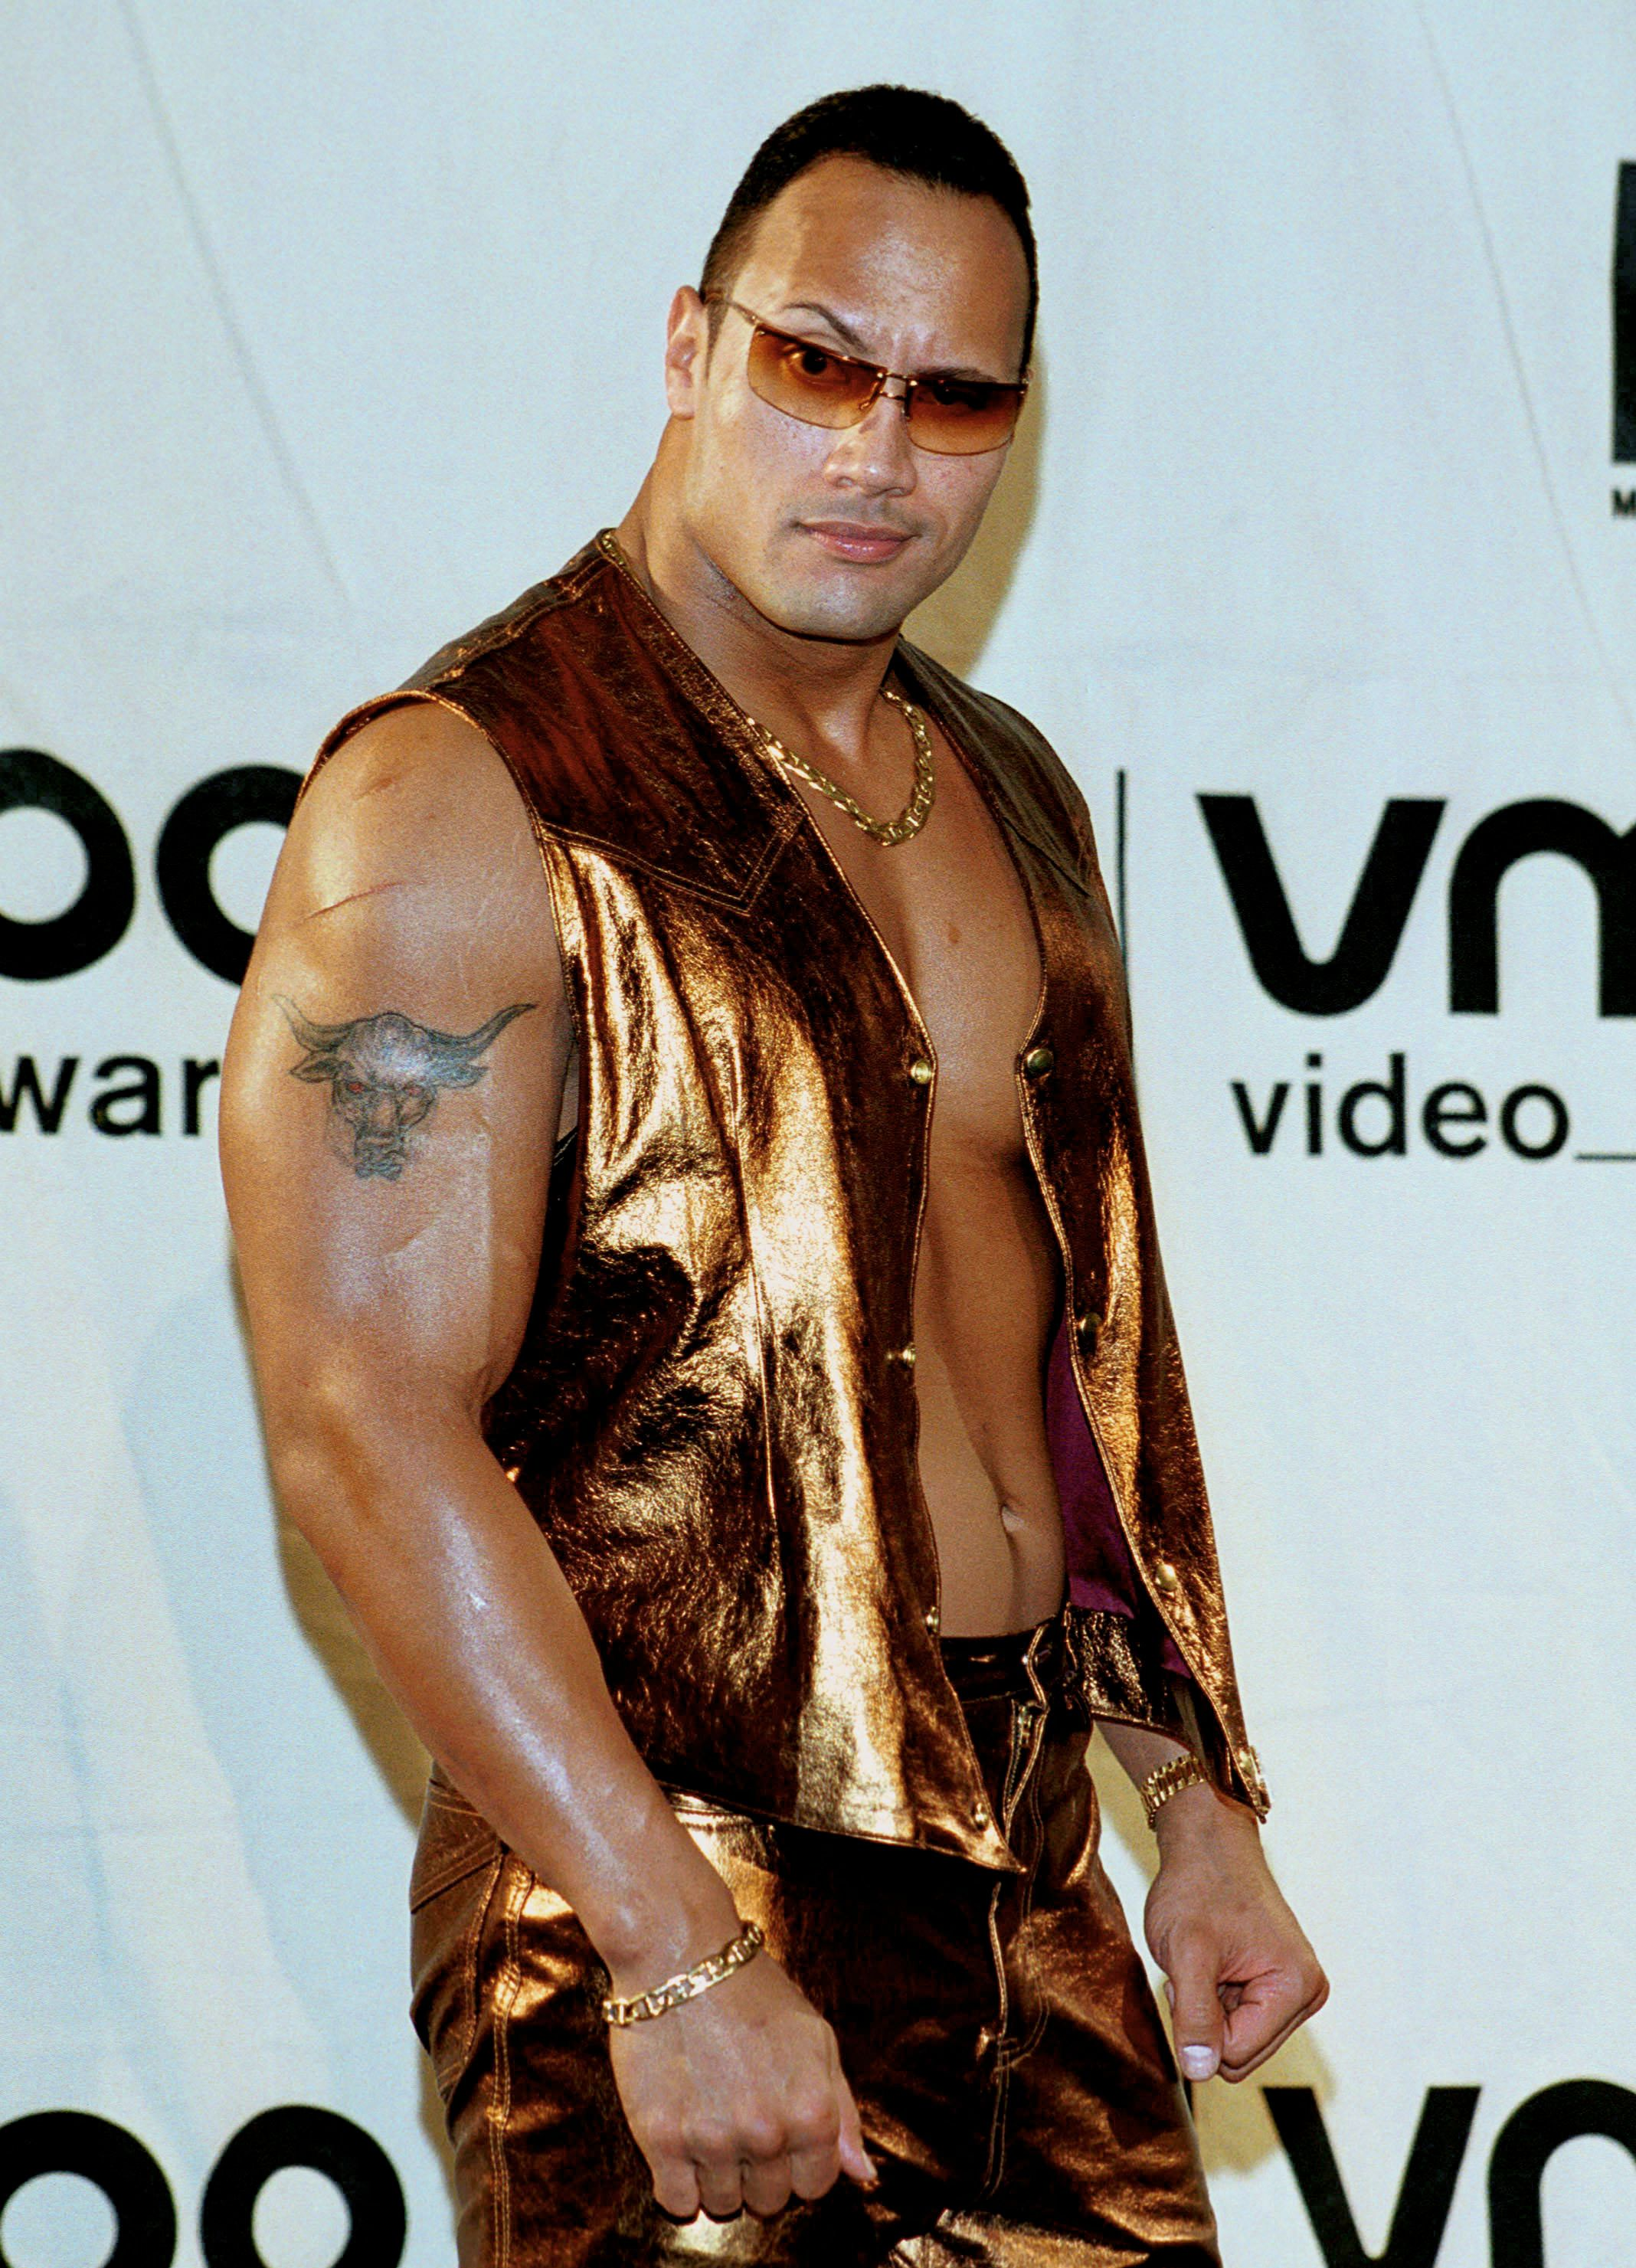 (Original Caption) Dwayne 'The Rock' Johnson. (Photo by Steve Azzara/Corbis via Getty Images)